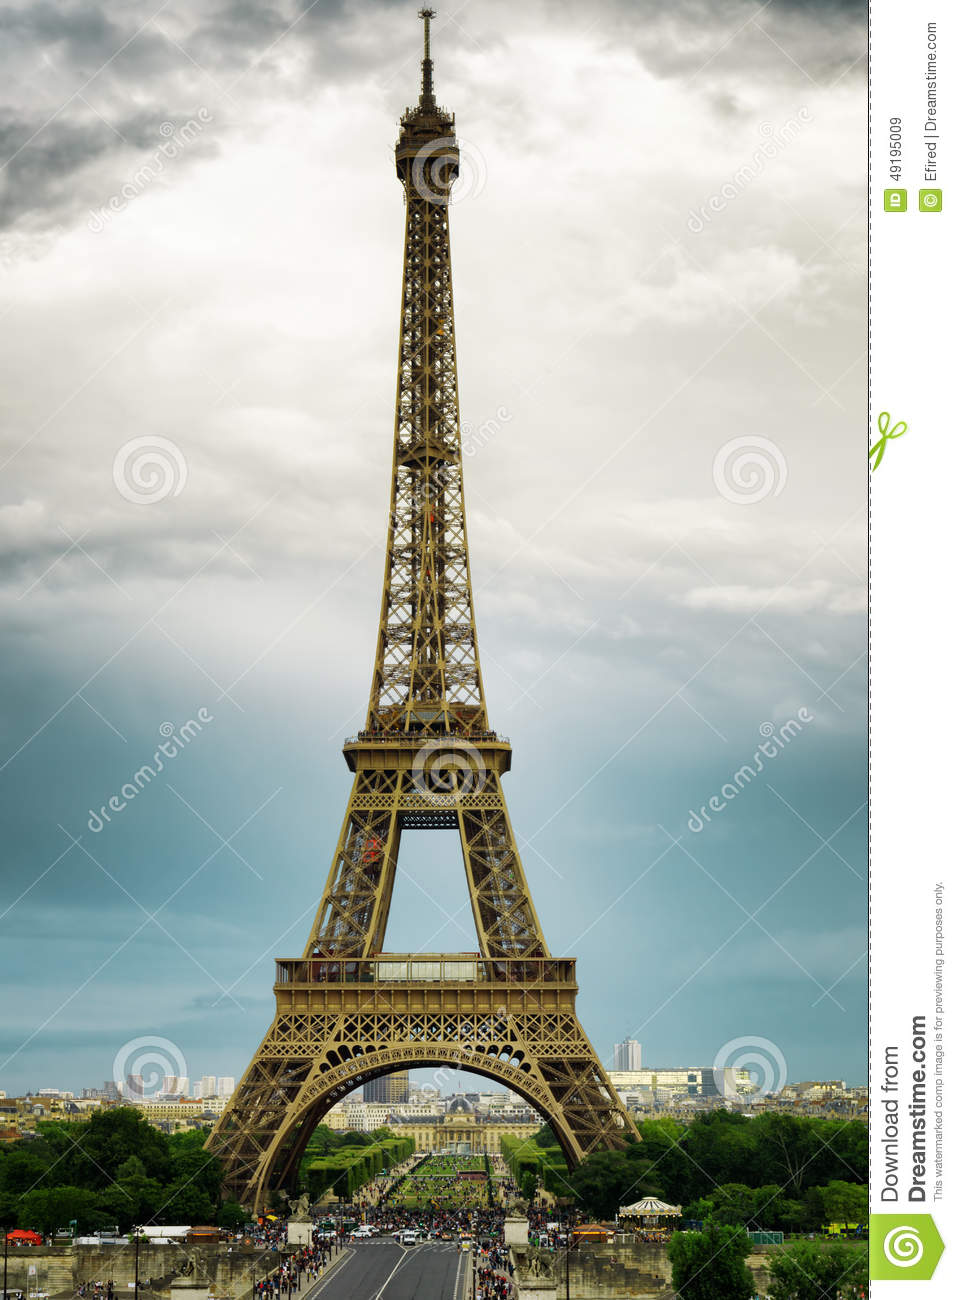 The View Of The Eiffel Tower Paris France Stock Photo Image 49195009